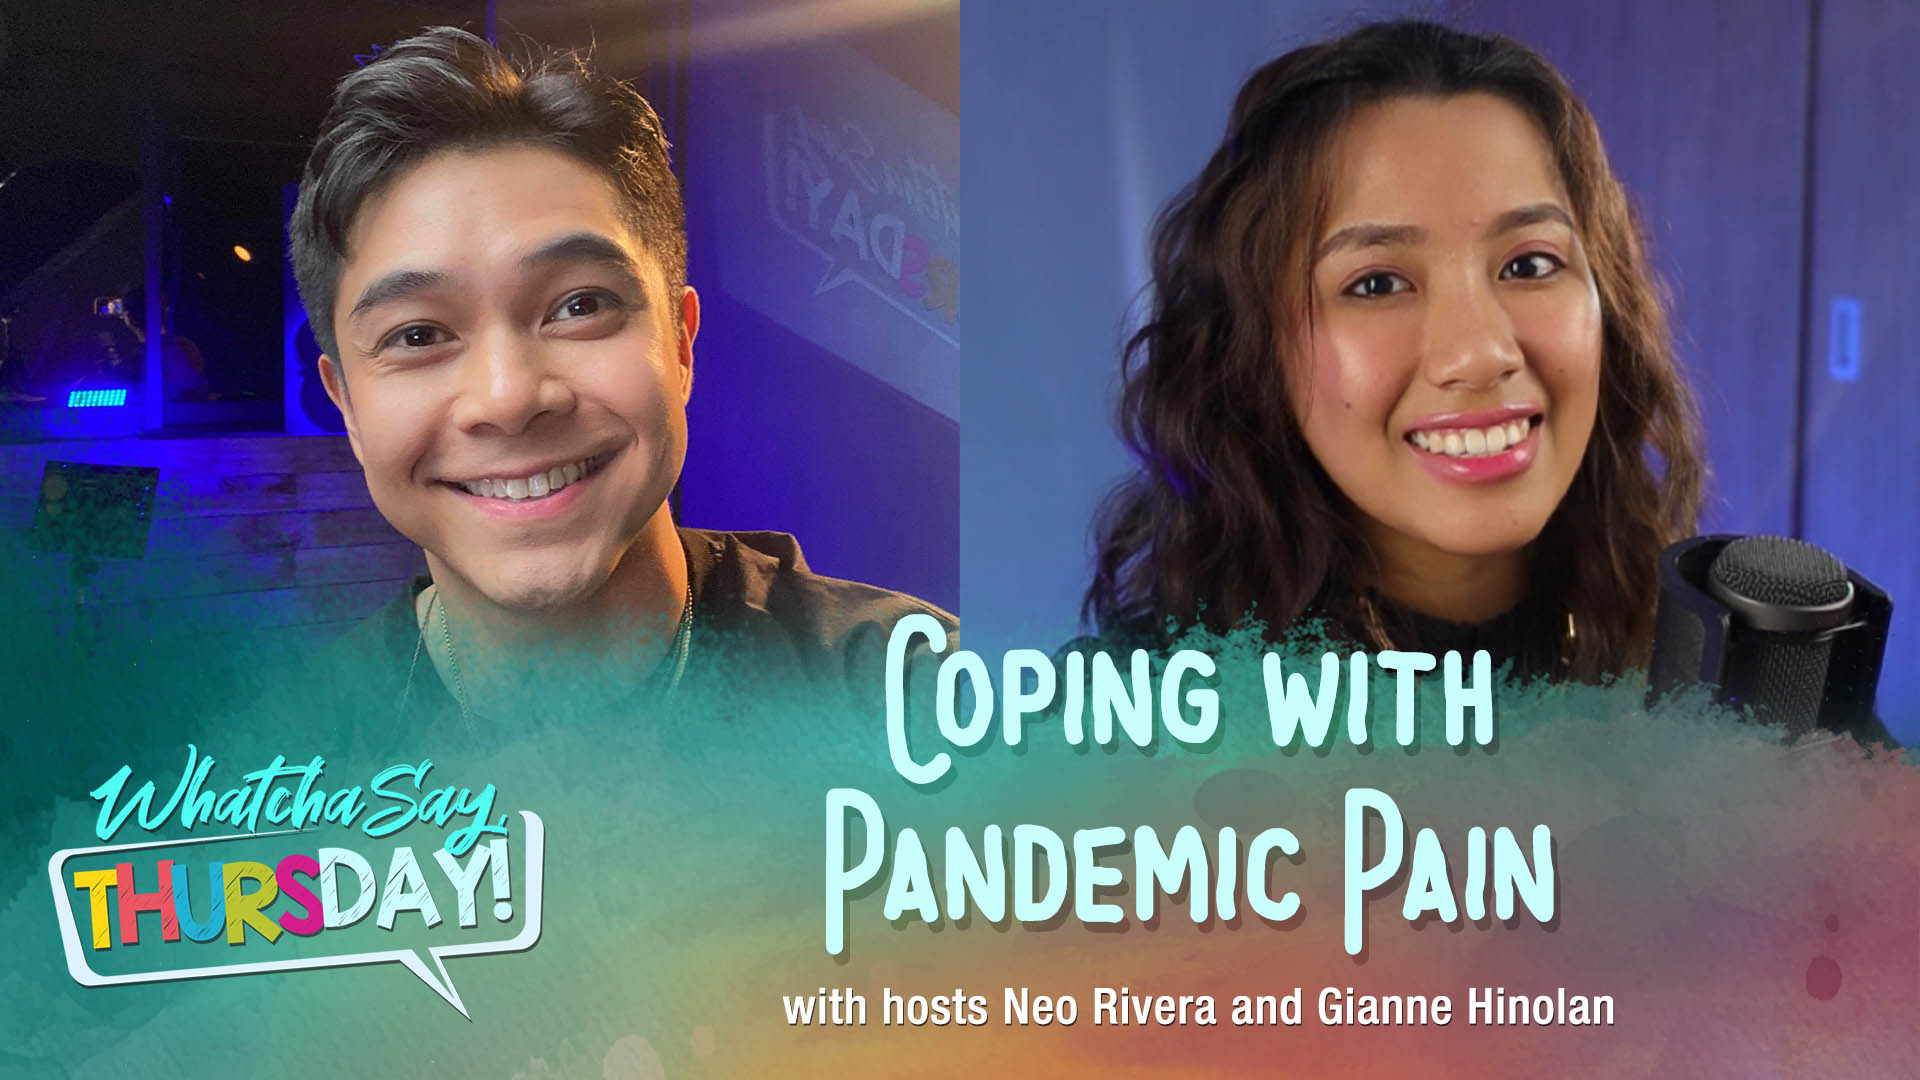 CBN Asia LIVE | Coping with Pandemic Pain | WhatchaSay, Thursday